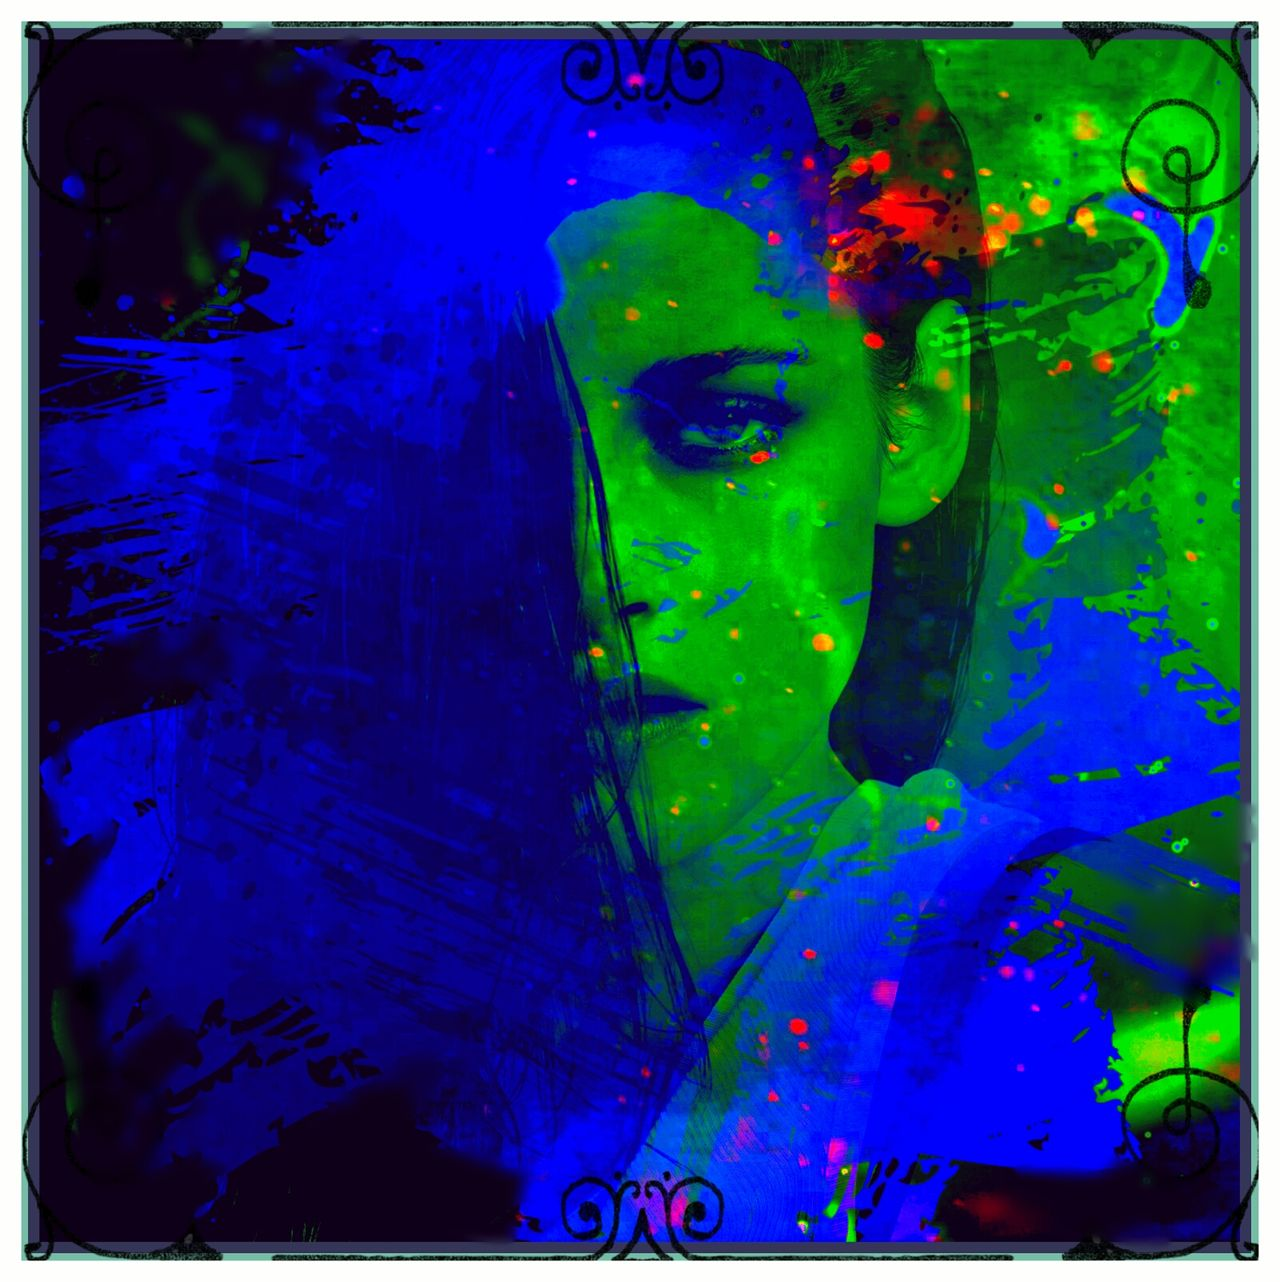 Art And Craft Backgrounds Bestoftheday Blue Bold Color Enhanced Colorful Creativity Full Frame Light And Shadow Multi Colored Mystical No People Popart Portrait Of A Woman Shadowplay Surrealism Surrealist Art Vibrant Vibrant Color Vivid Water